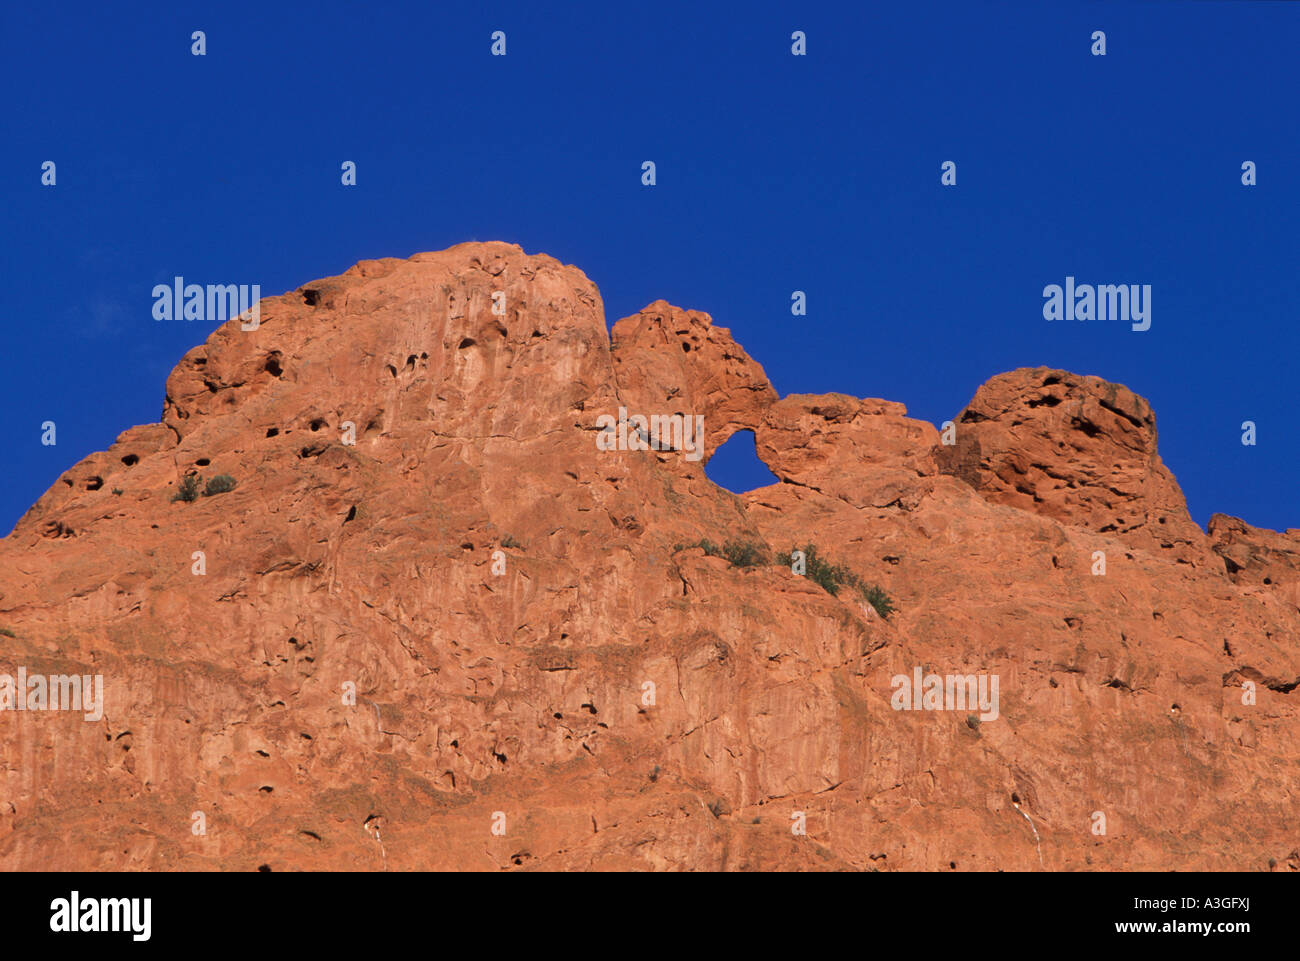 Kissing Camels One Of The Signature Rock Formations Of